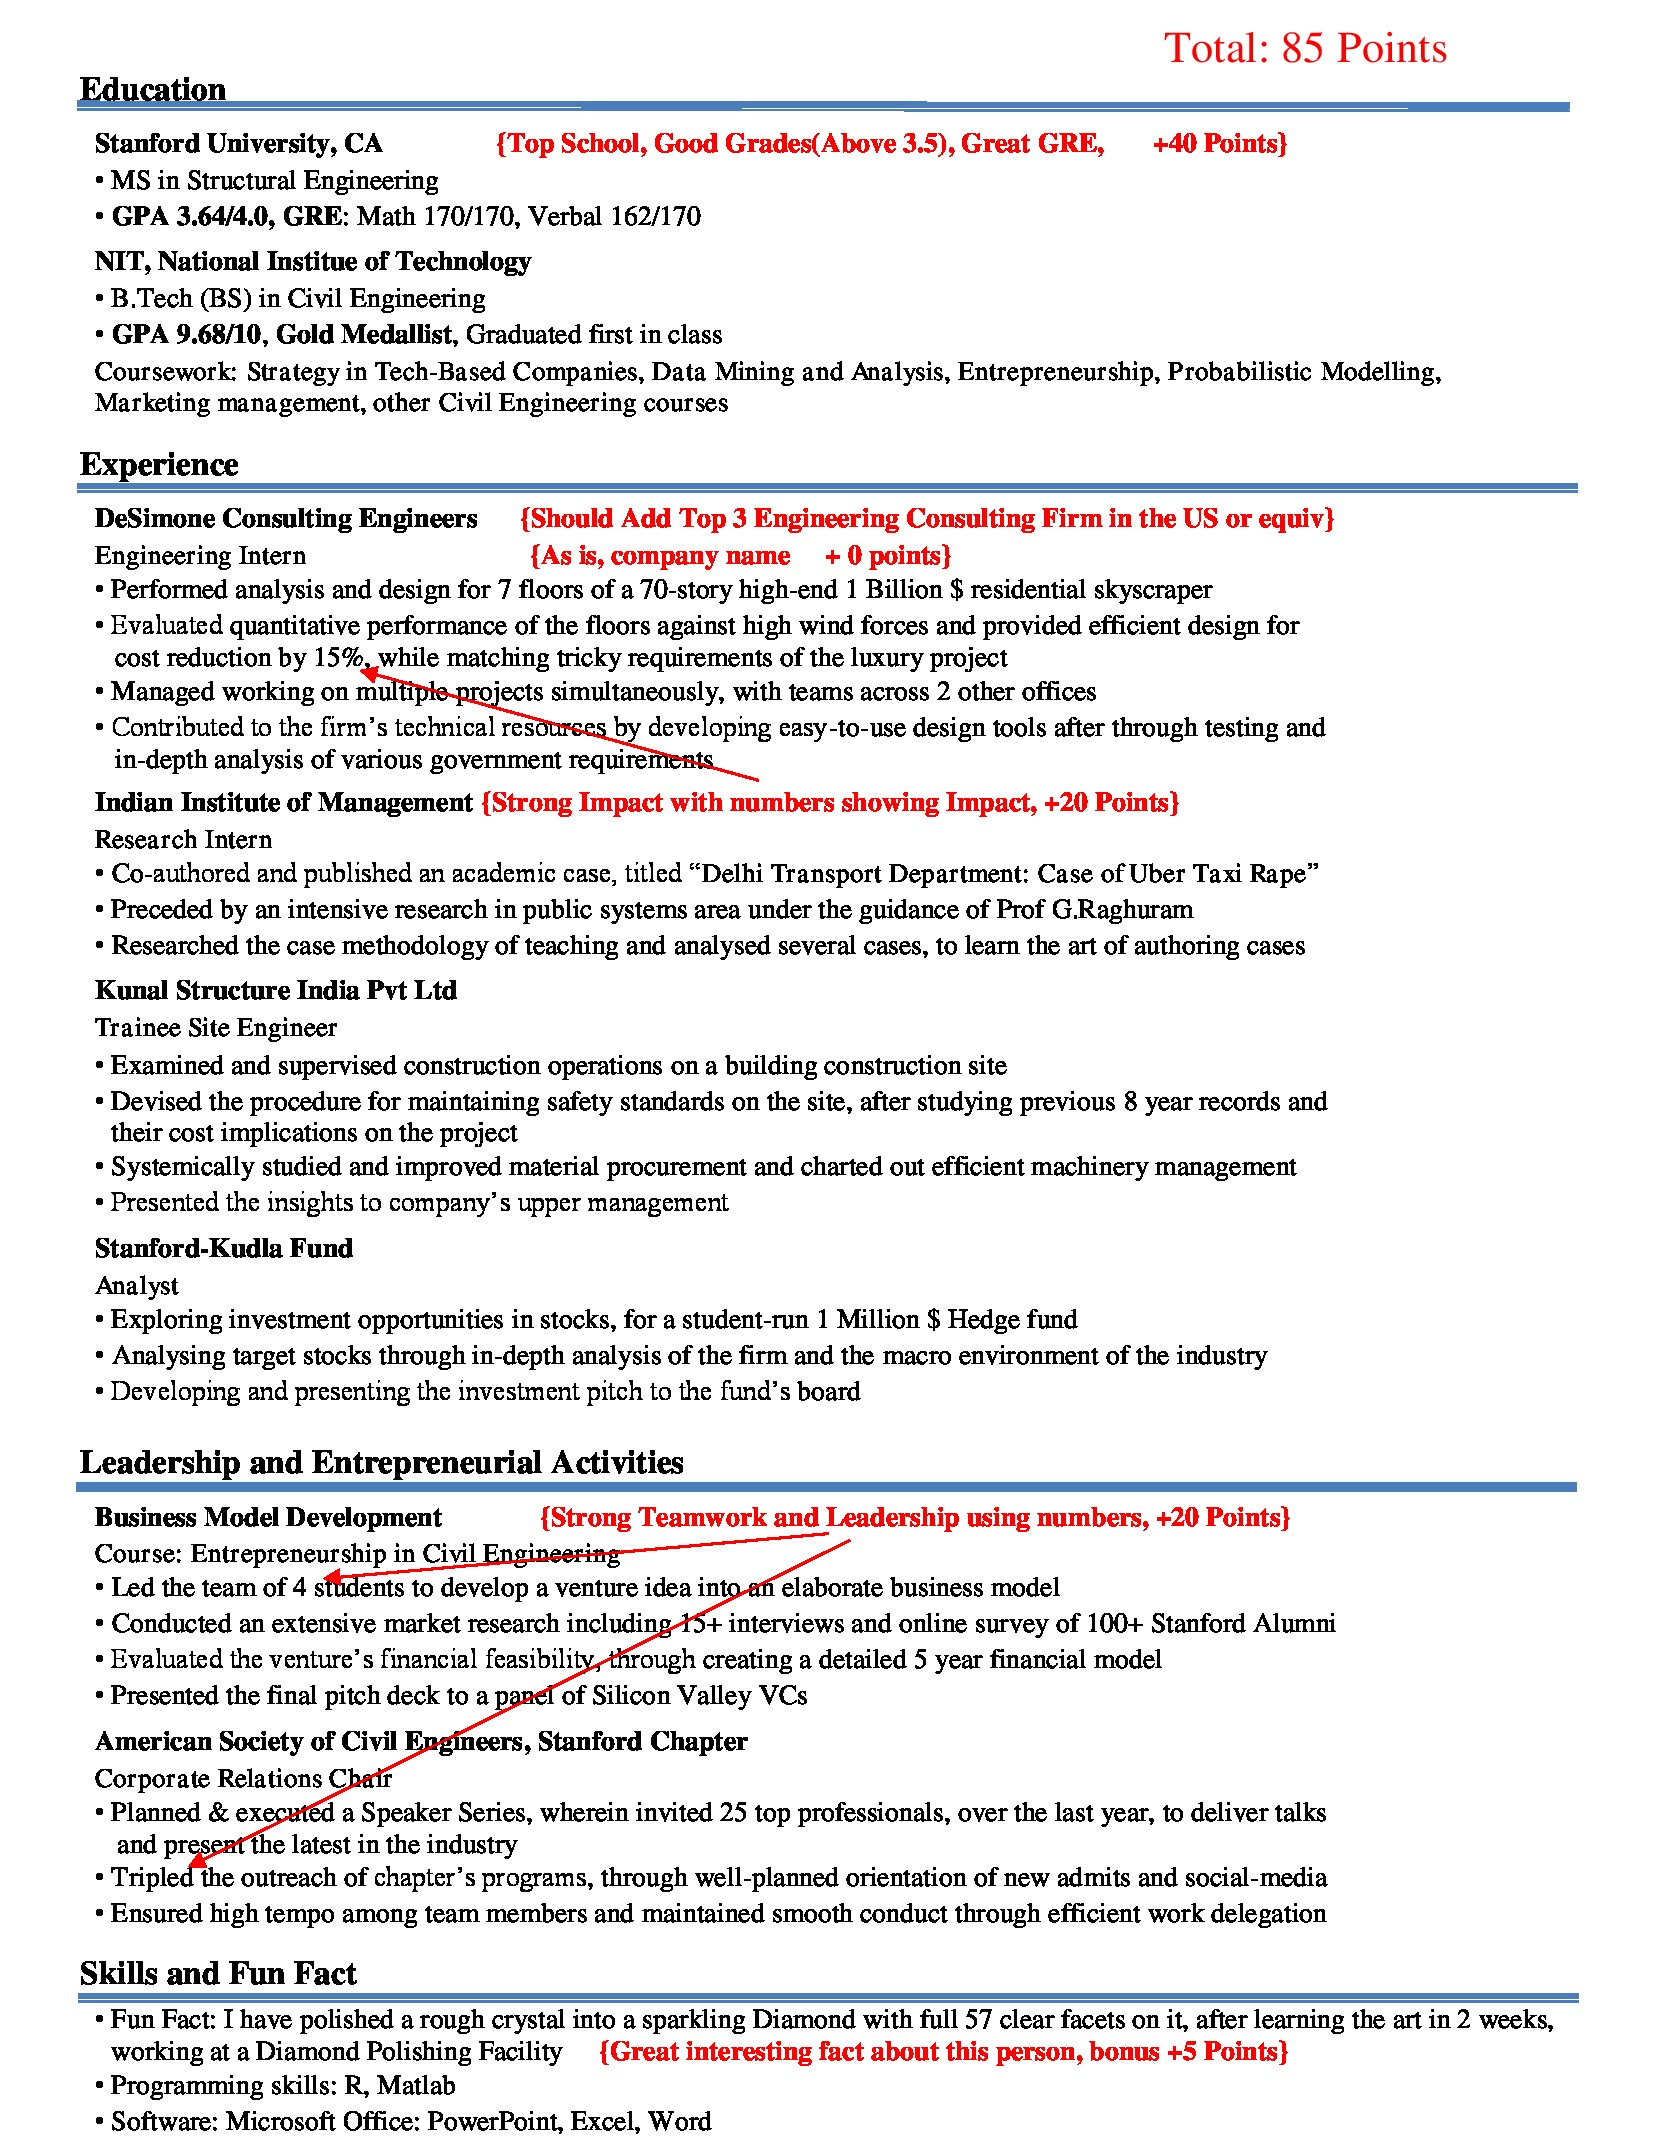 Consulting resume scored after editing